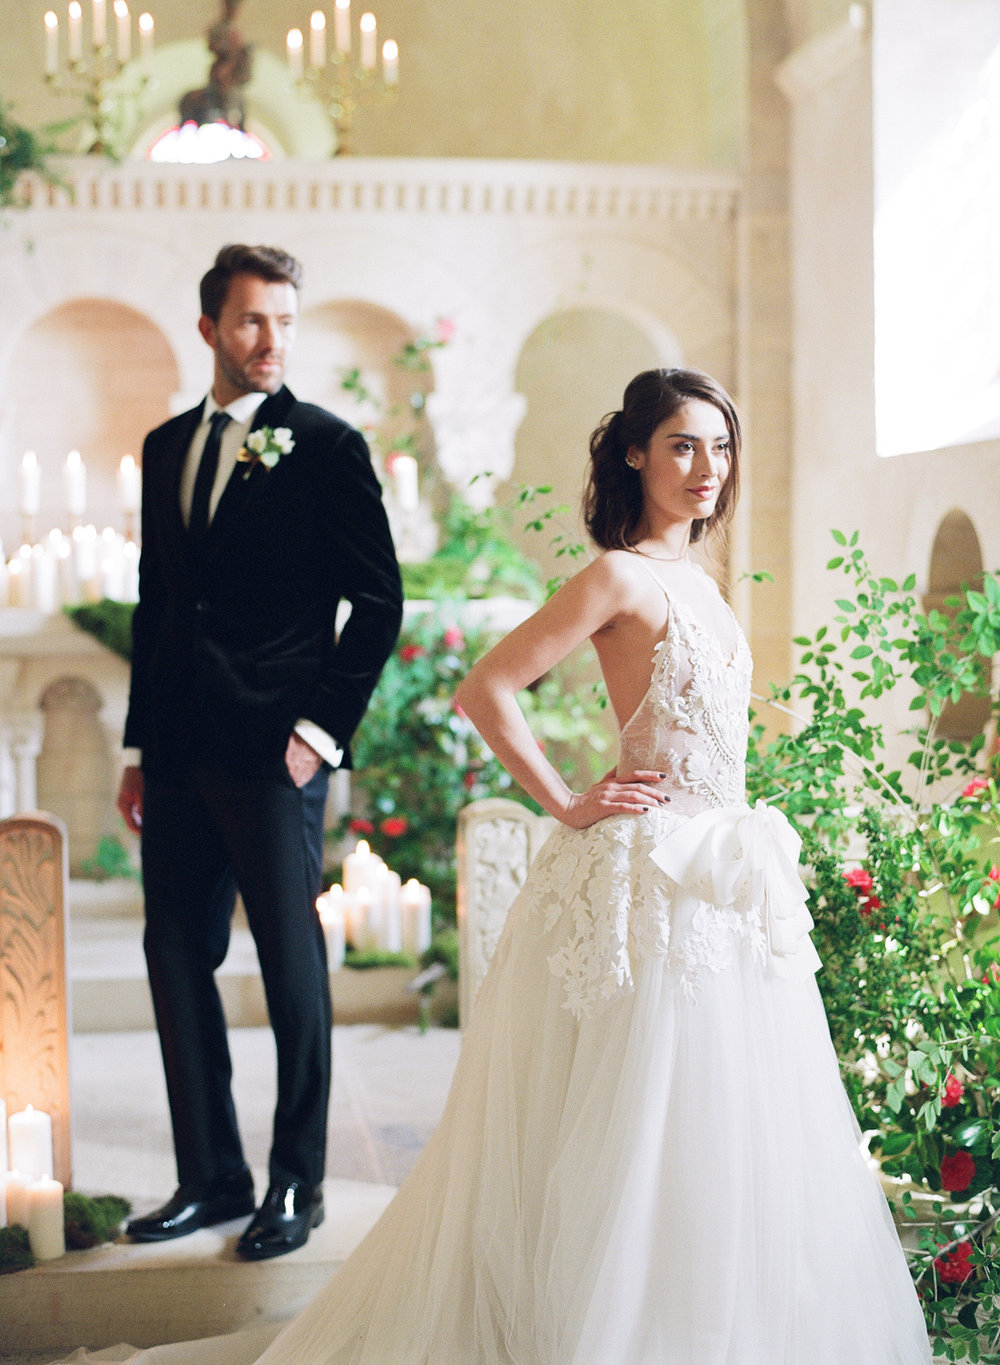 Bride and groom during a wedding ceremony in a chapel at Chateau de Varennes; Sylvie Gil Photography